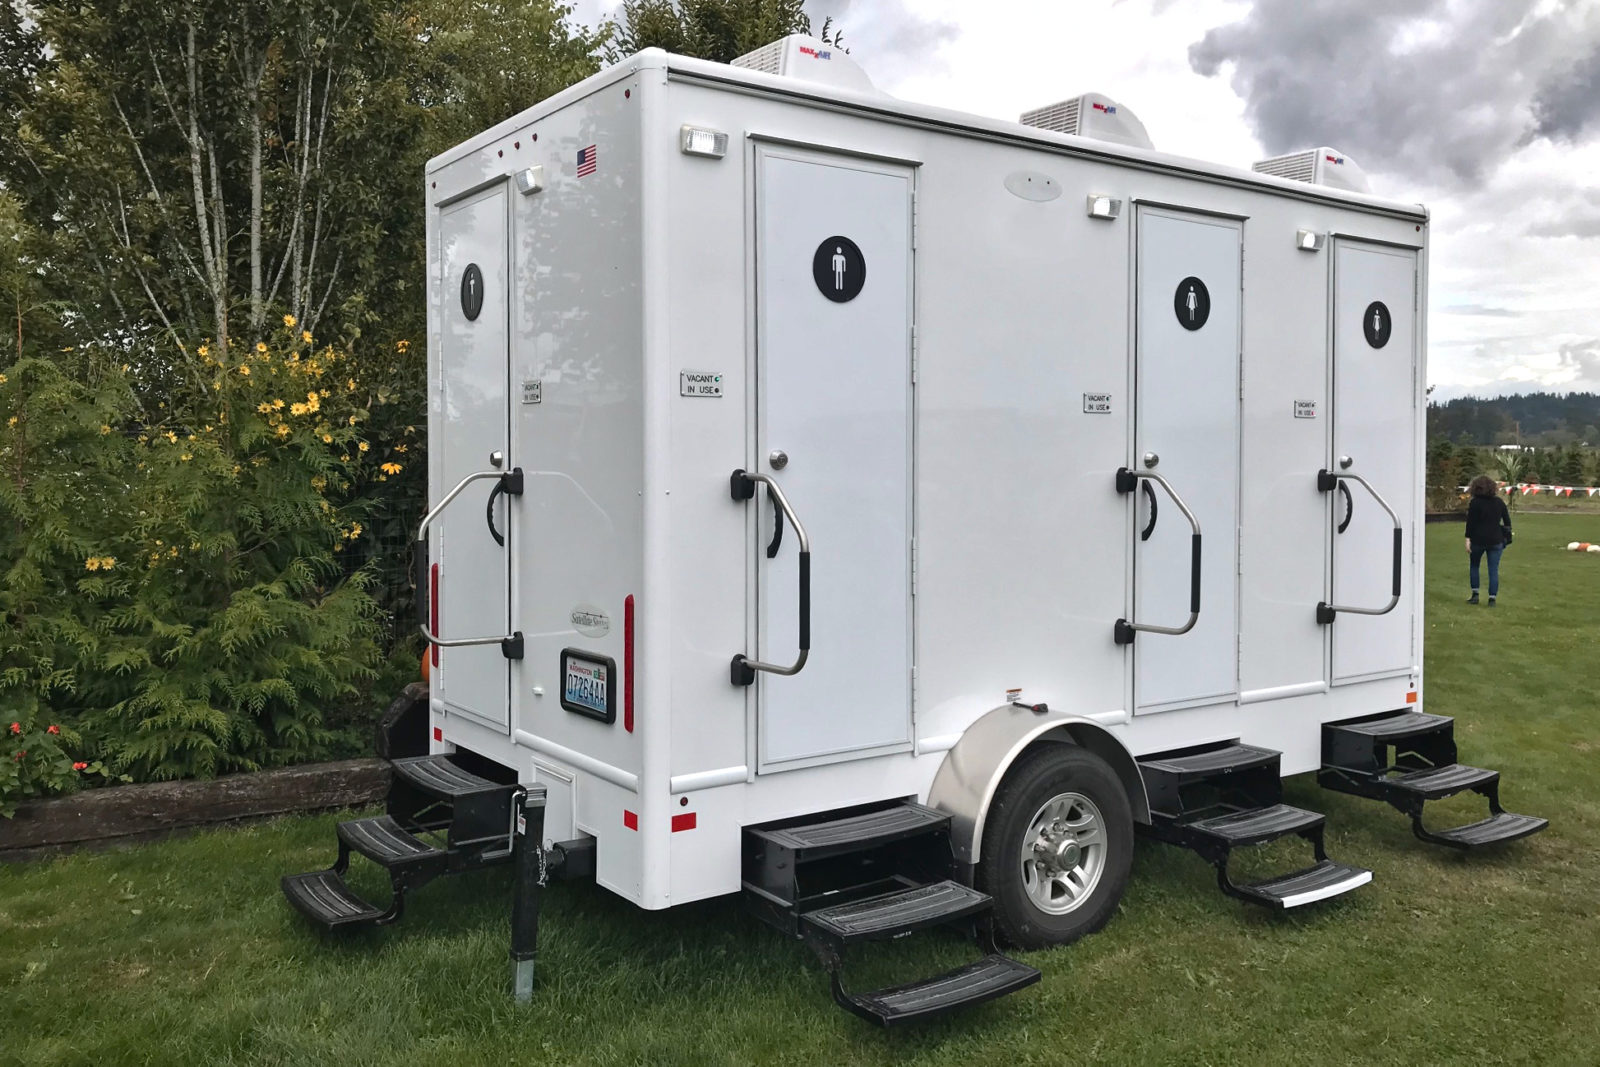 Portable Restroom Trailer Rental National Event Pros - Bathroom trailer rentals